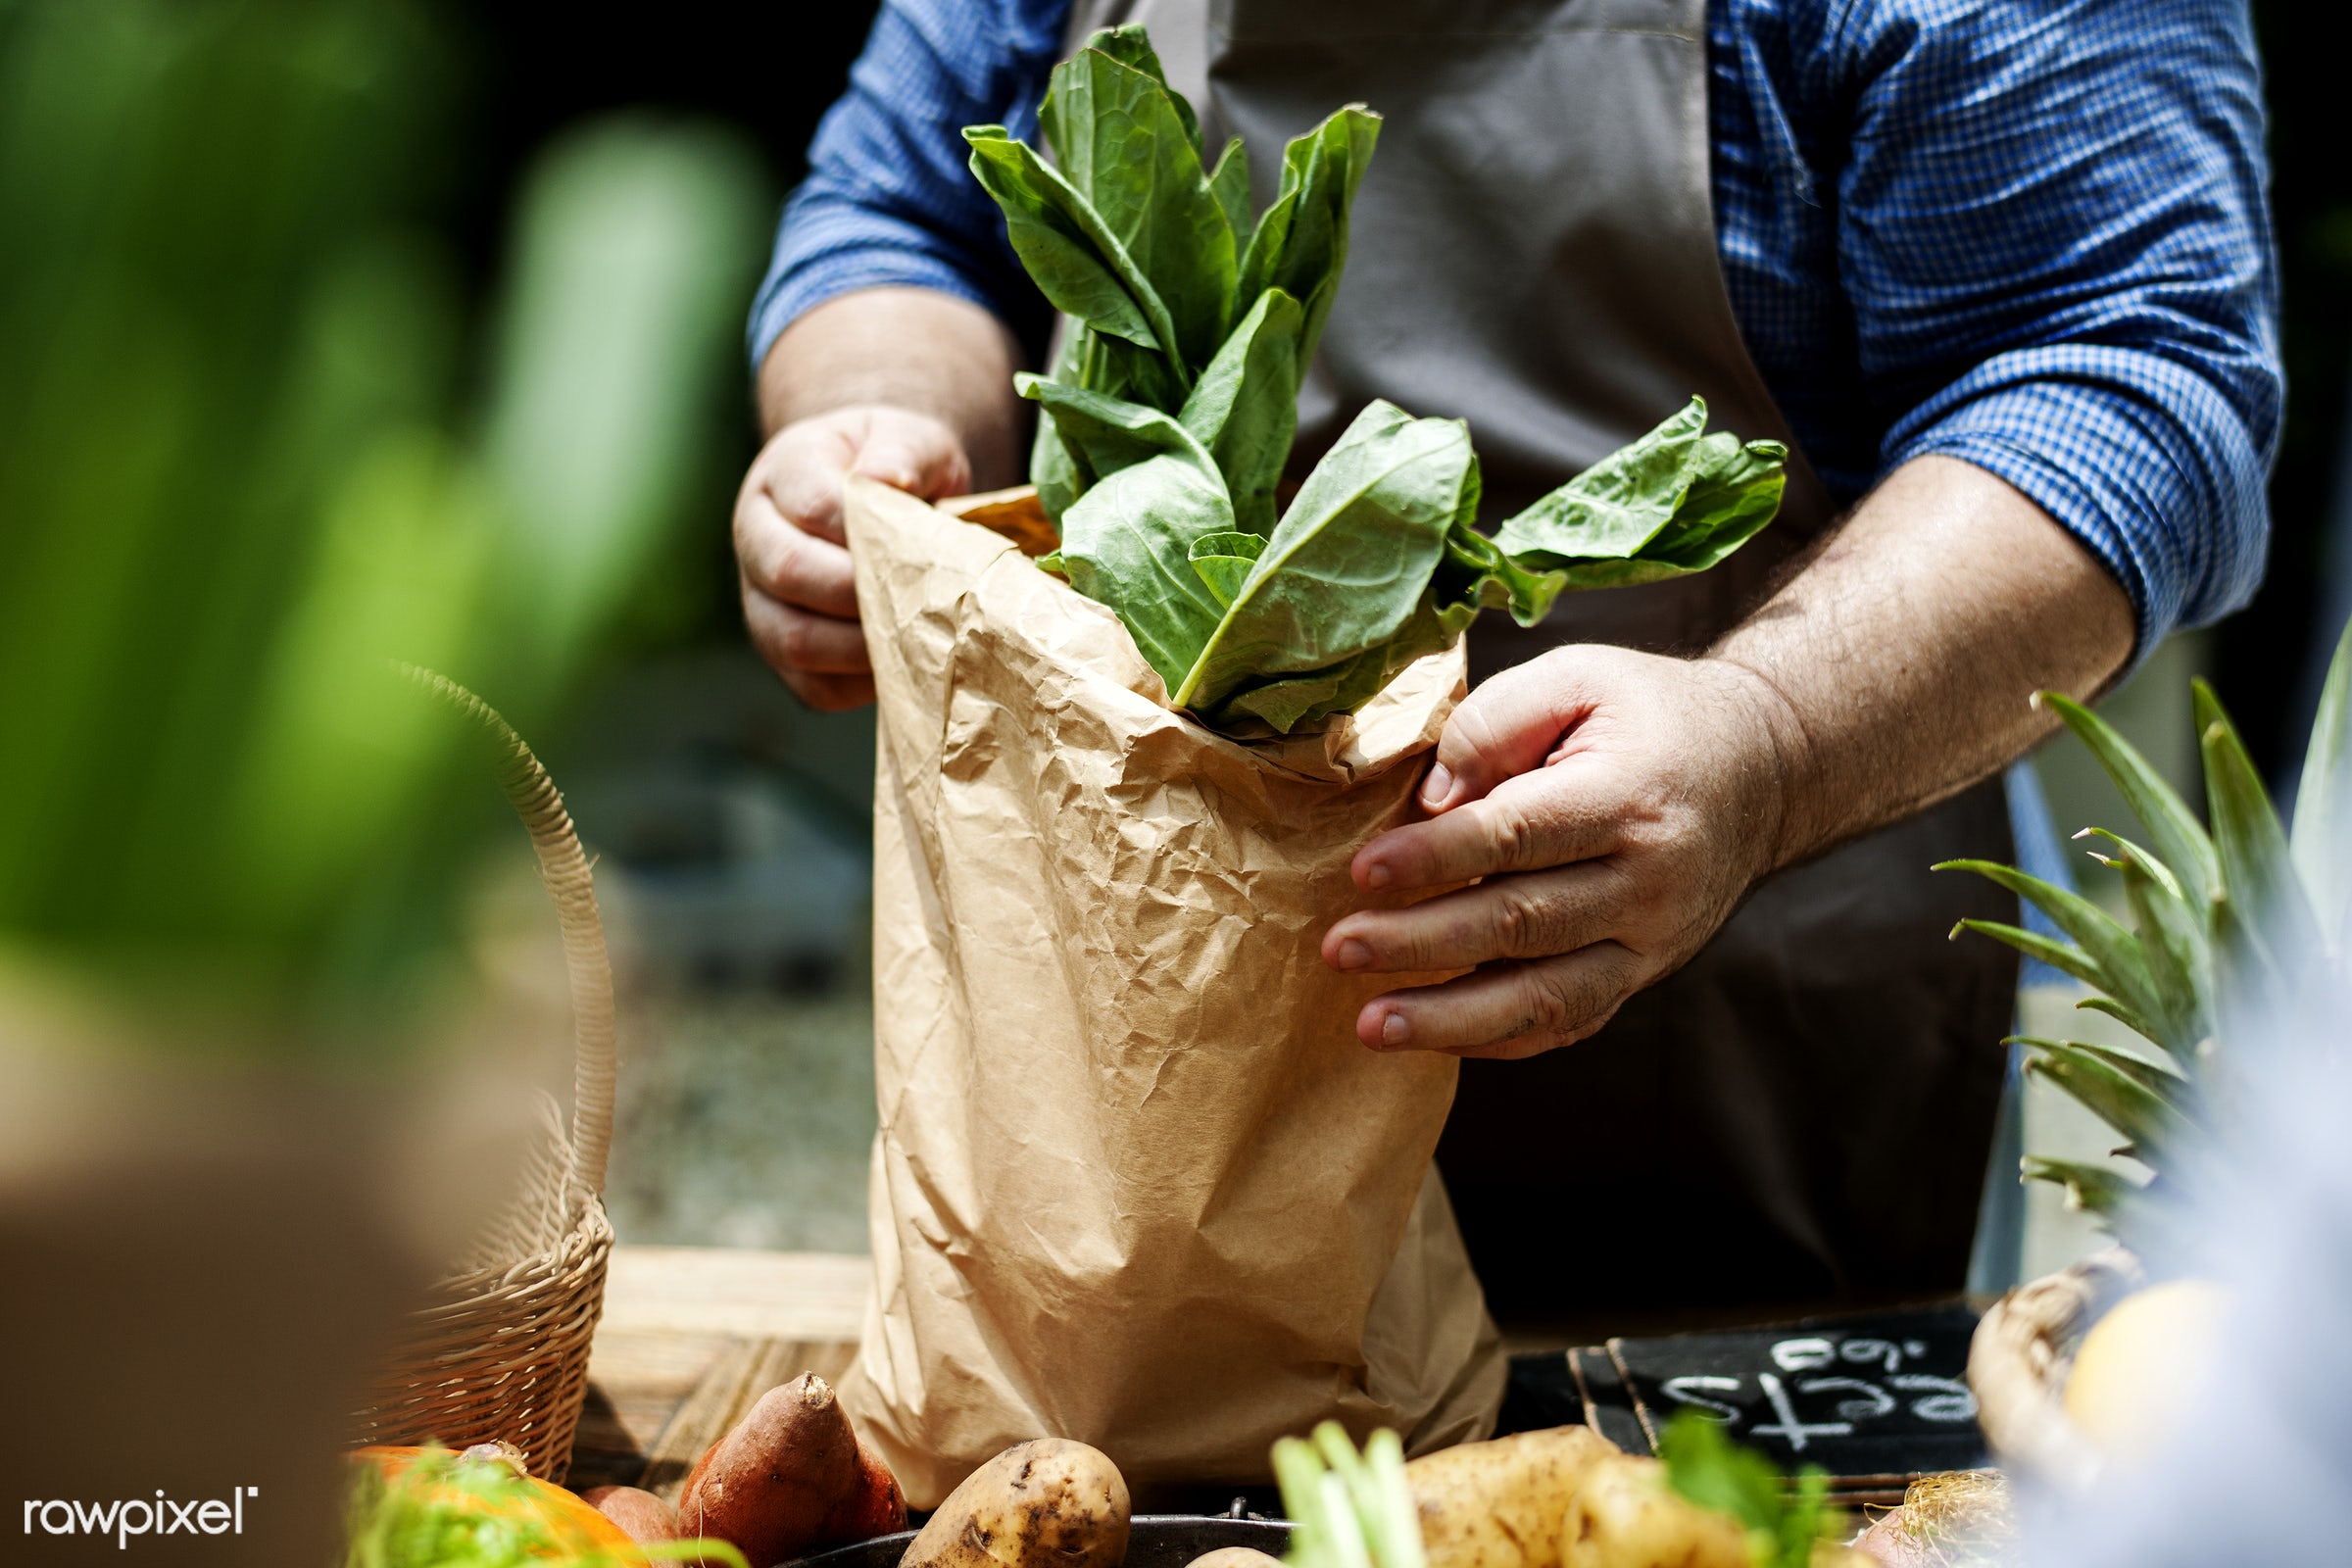 A seller putting vegetable in a bag - raw, diverse, farm, ingredients, farmer, nature, fresh, hands, products, closeup,...